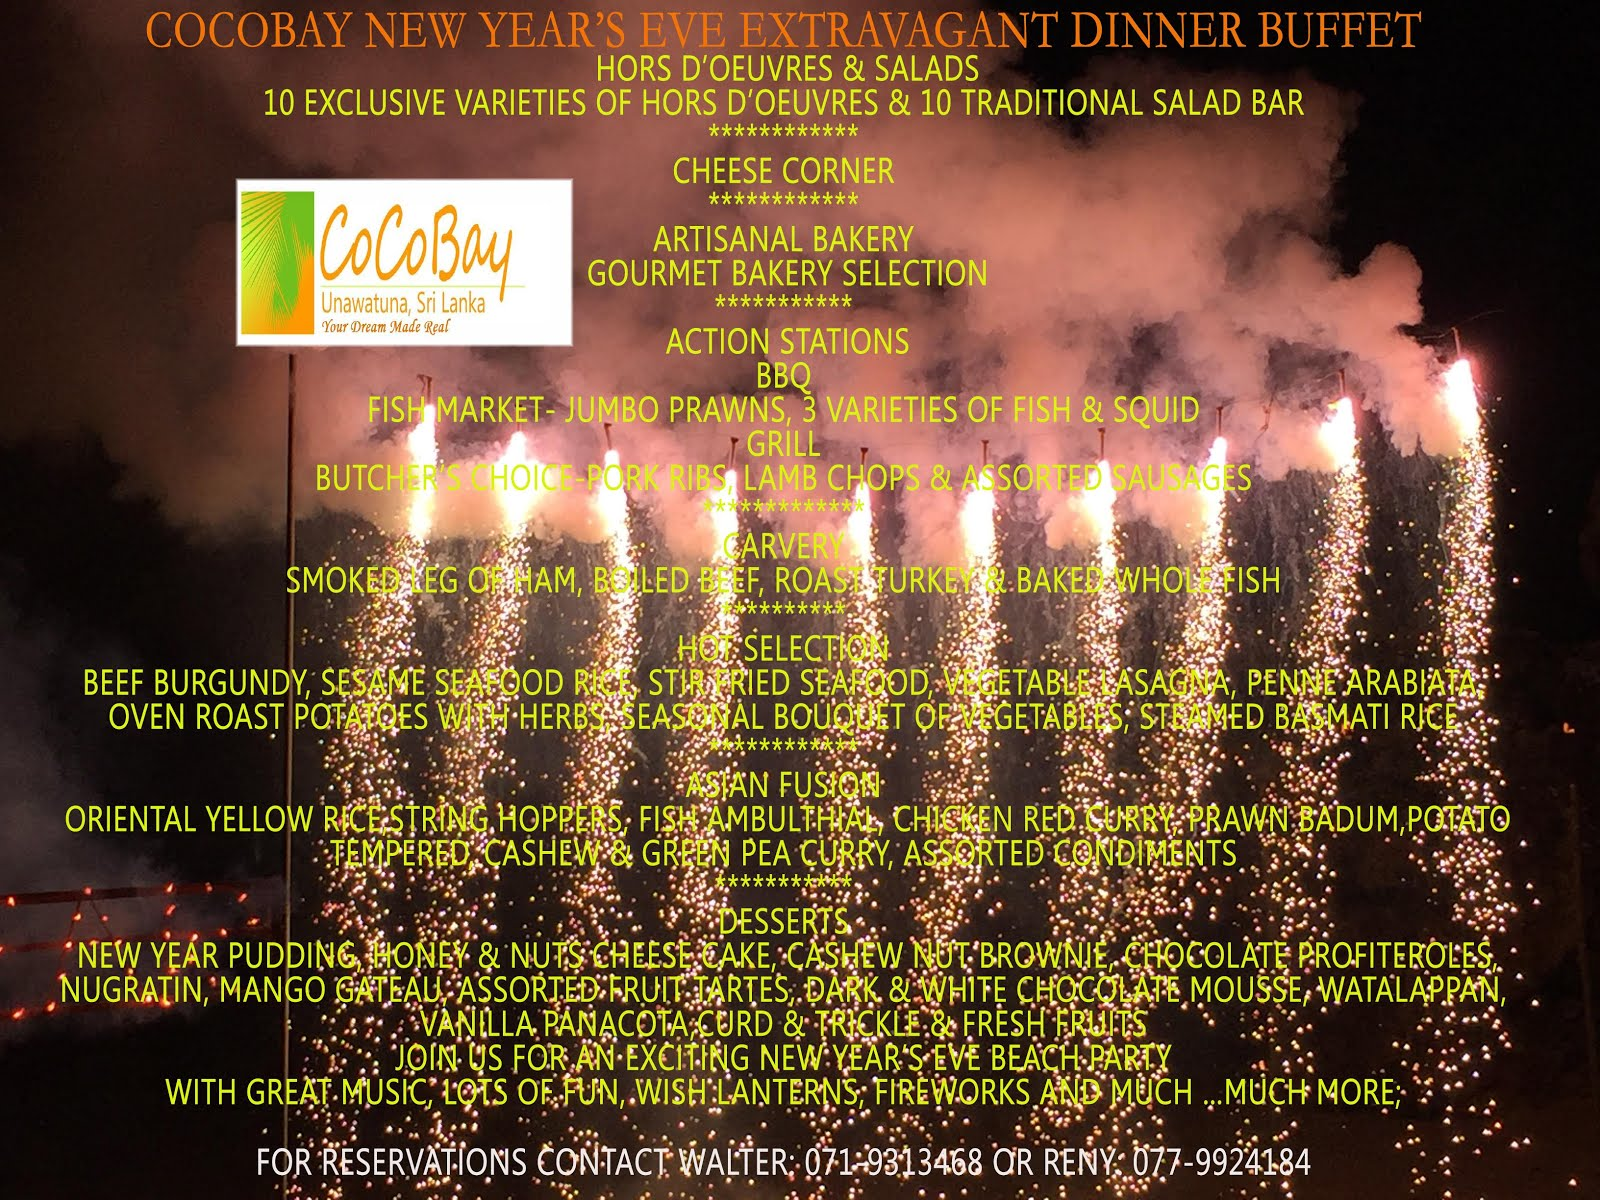 COCOBAY NEW YEAR'S EVE EXTRAVAGANT DINNER BUFFET